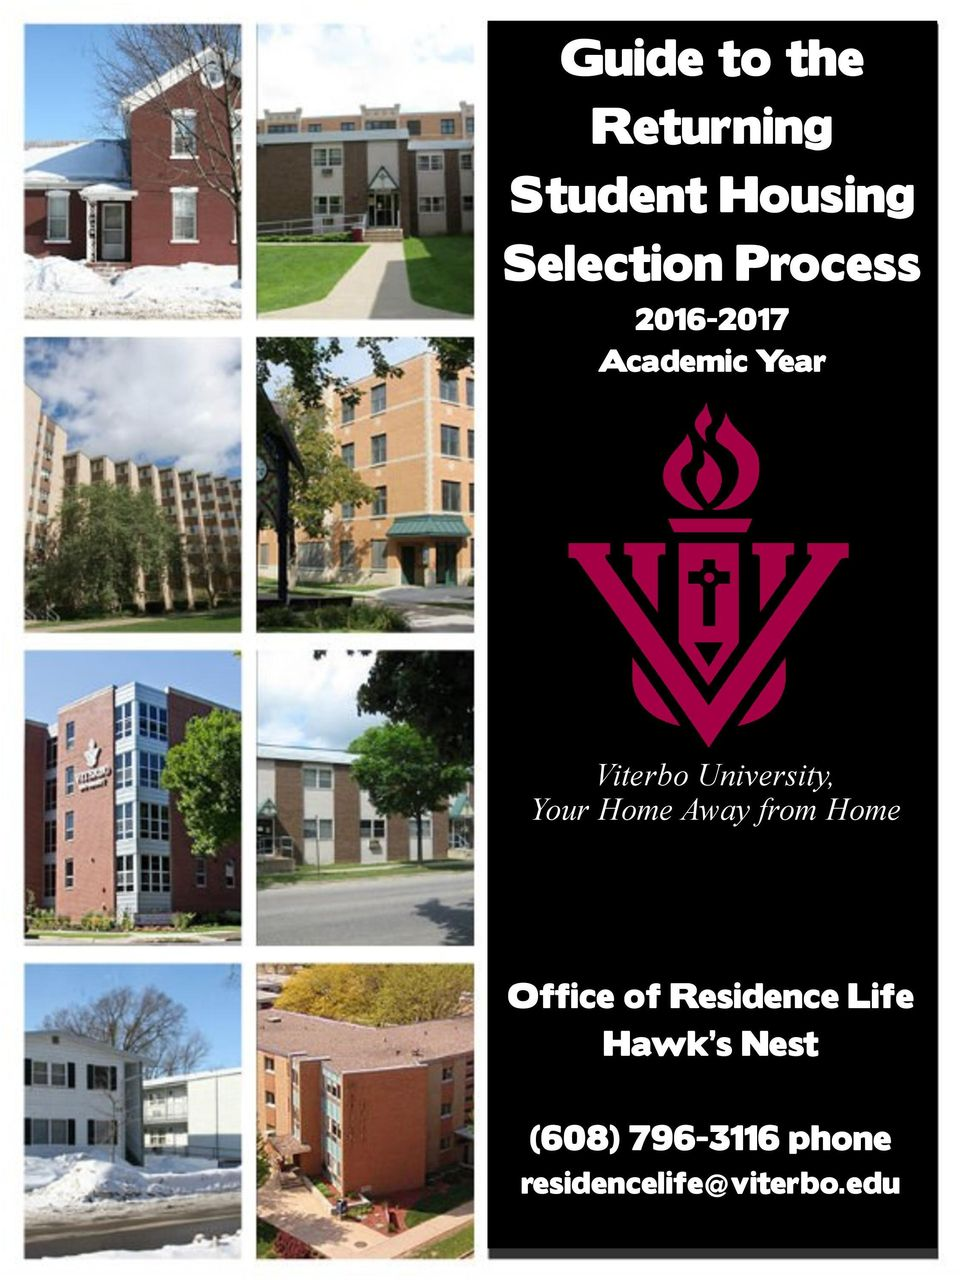 Your Home Away from Home Office of Residence Life